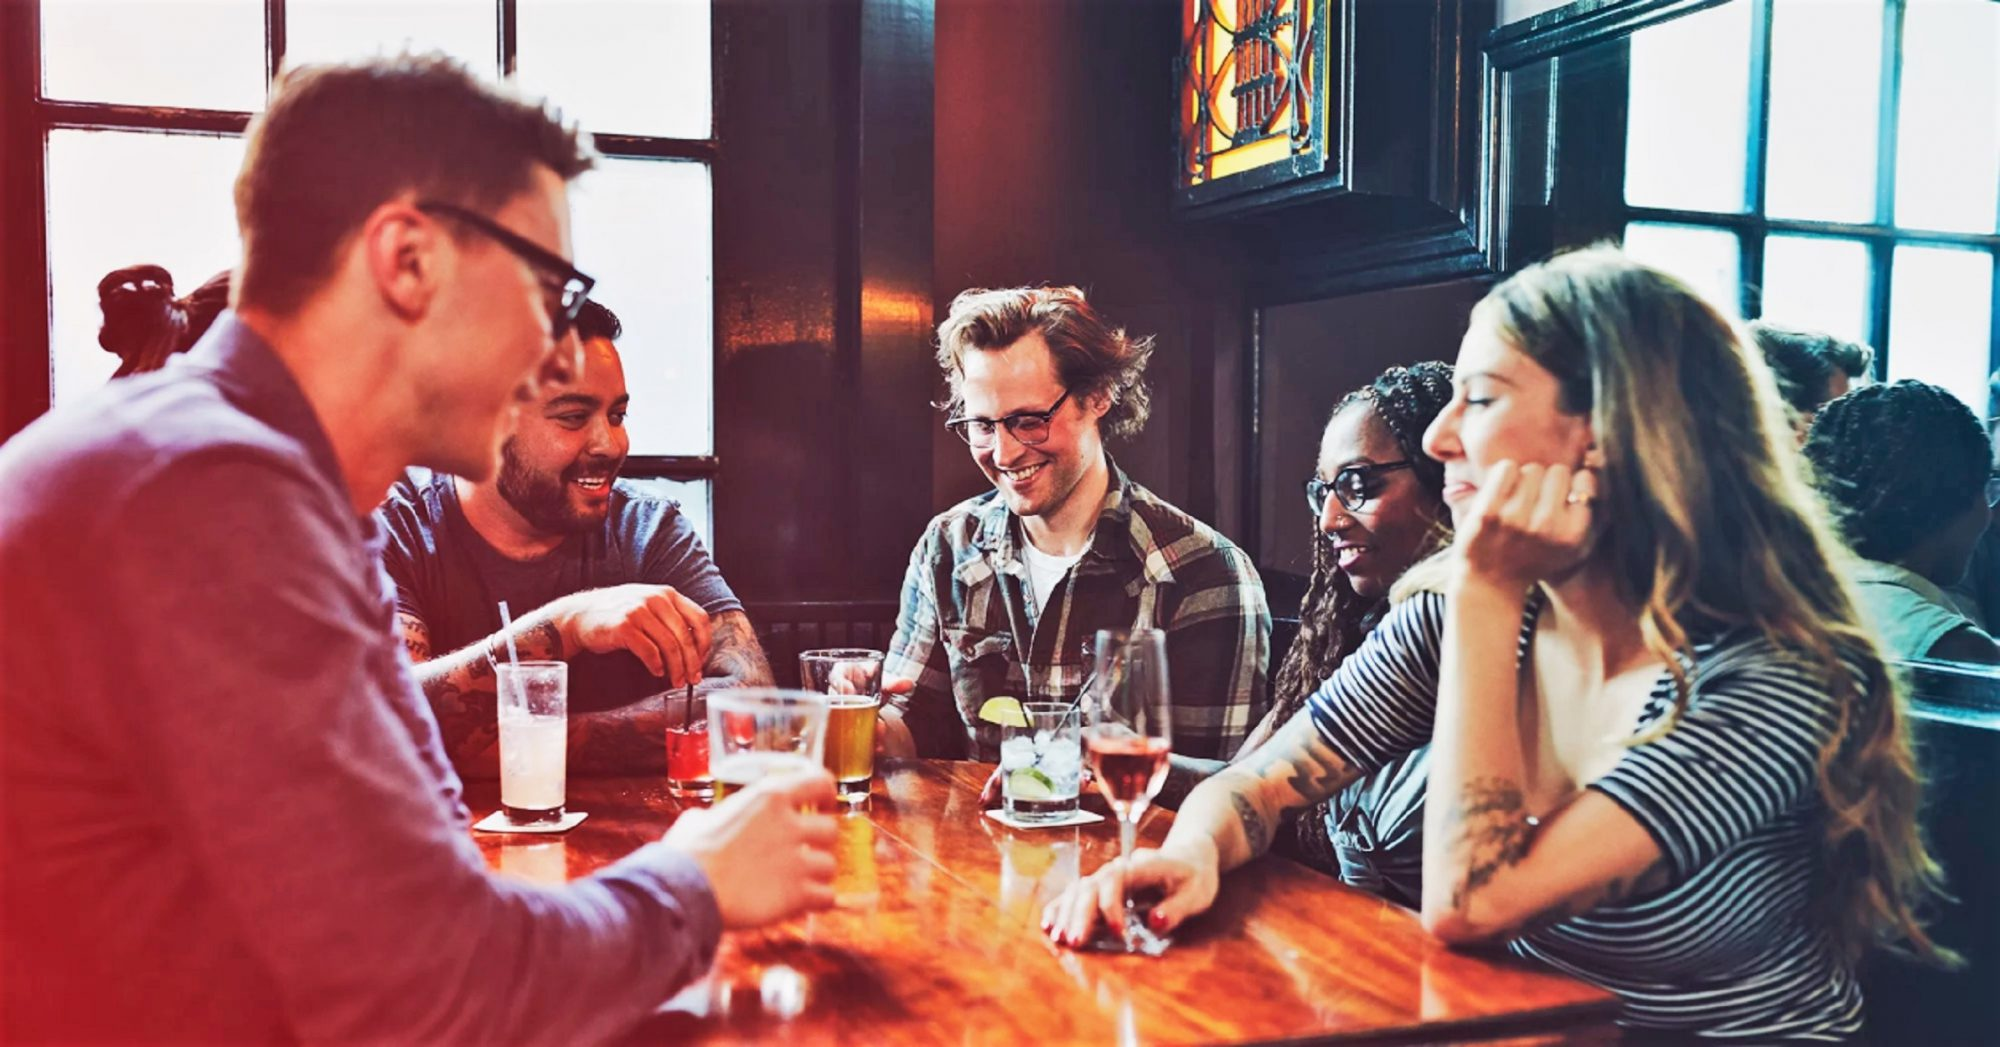 group of friends sitting at bar table with drinks